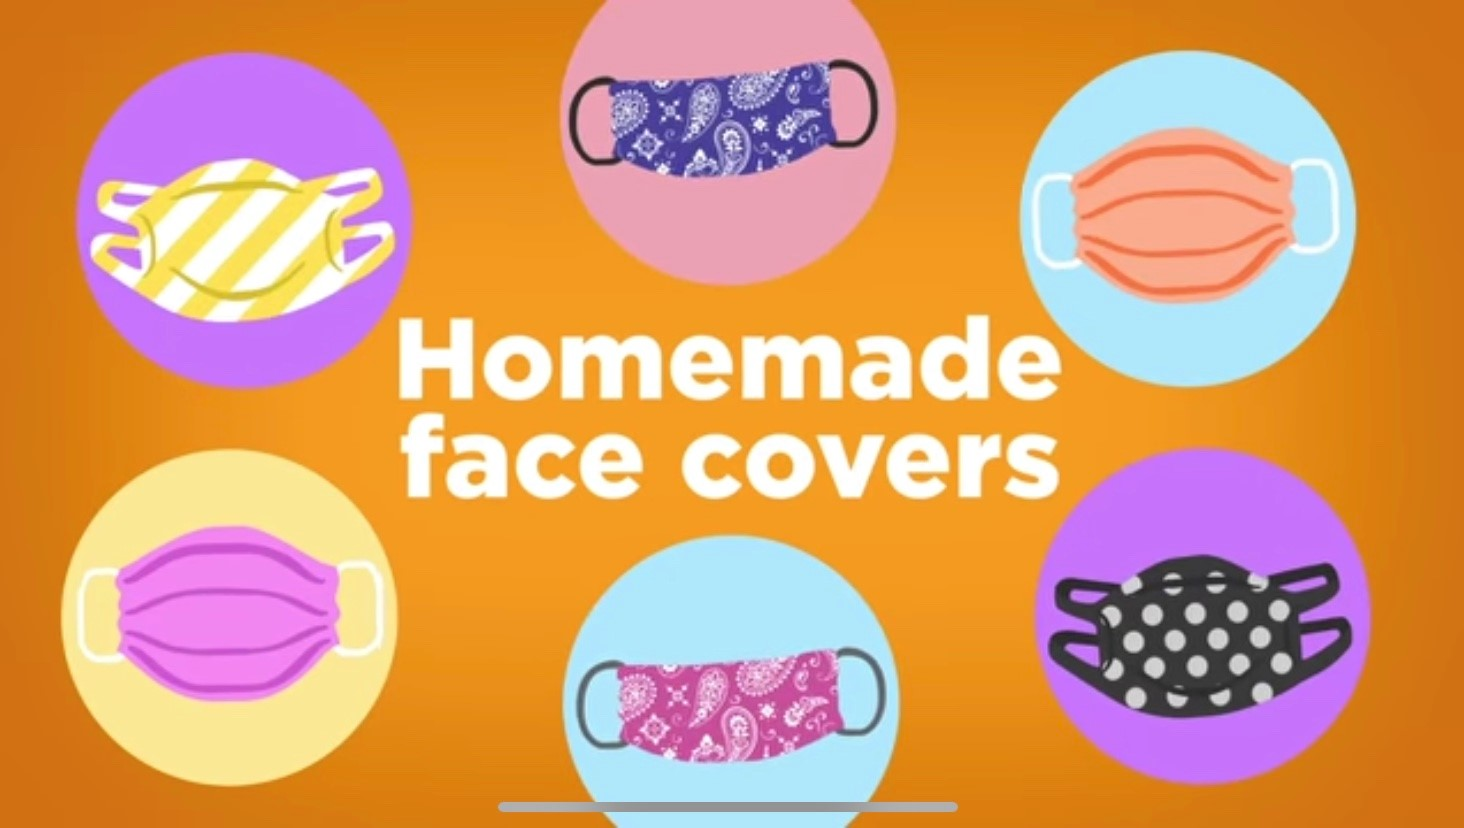 If you are going outside of your home because you're an essential worker or you're performing an essential task, wear a face mask. Homemade face masks can be made out of t-shirt or bandanas.